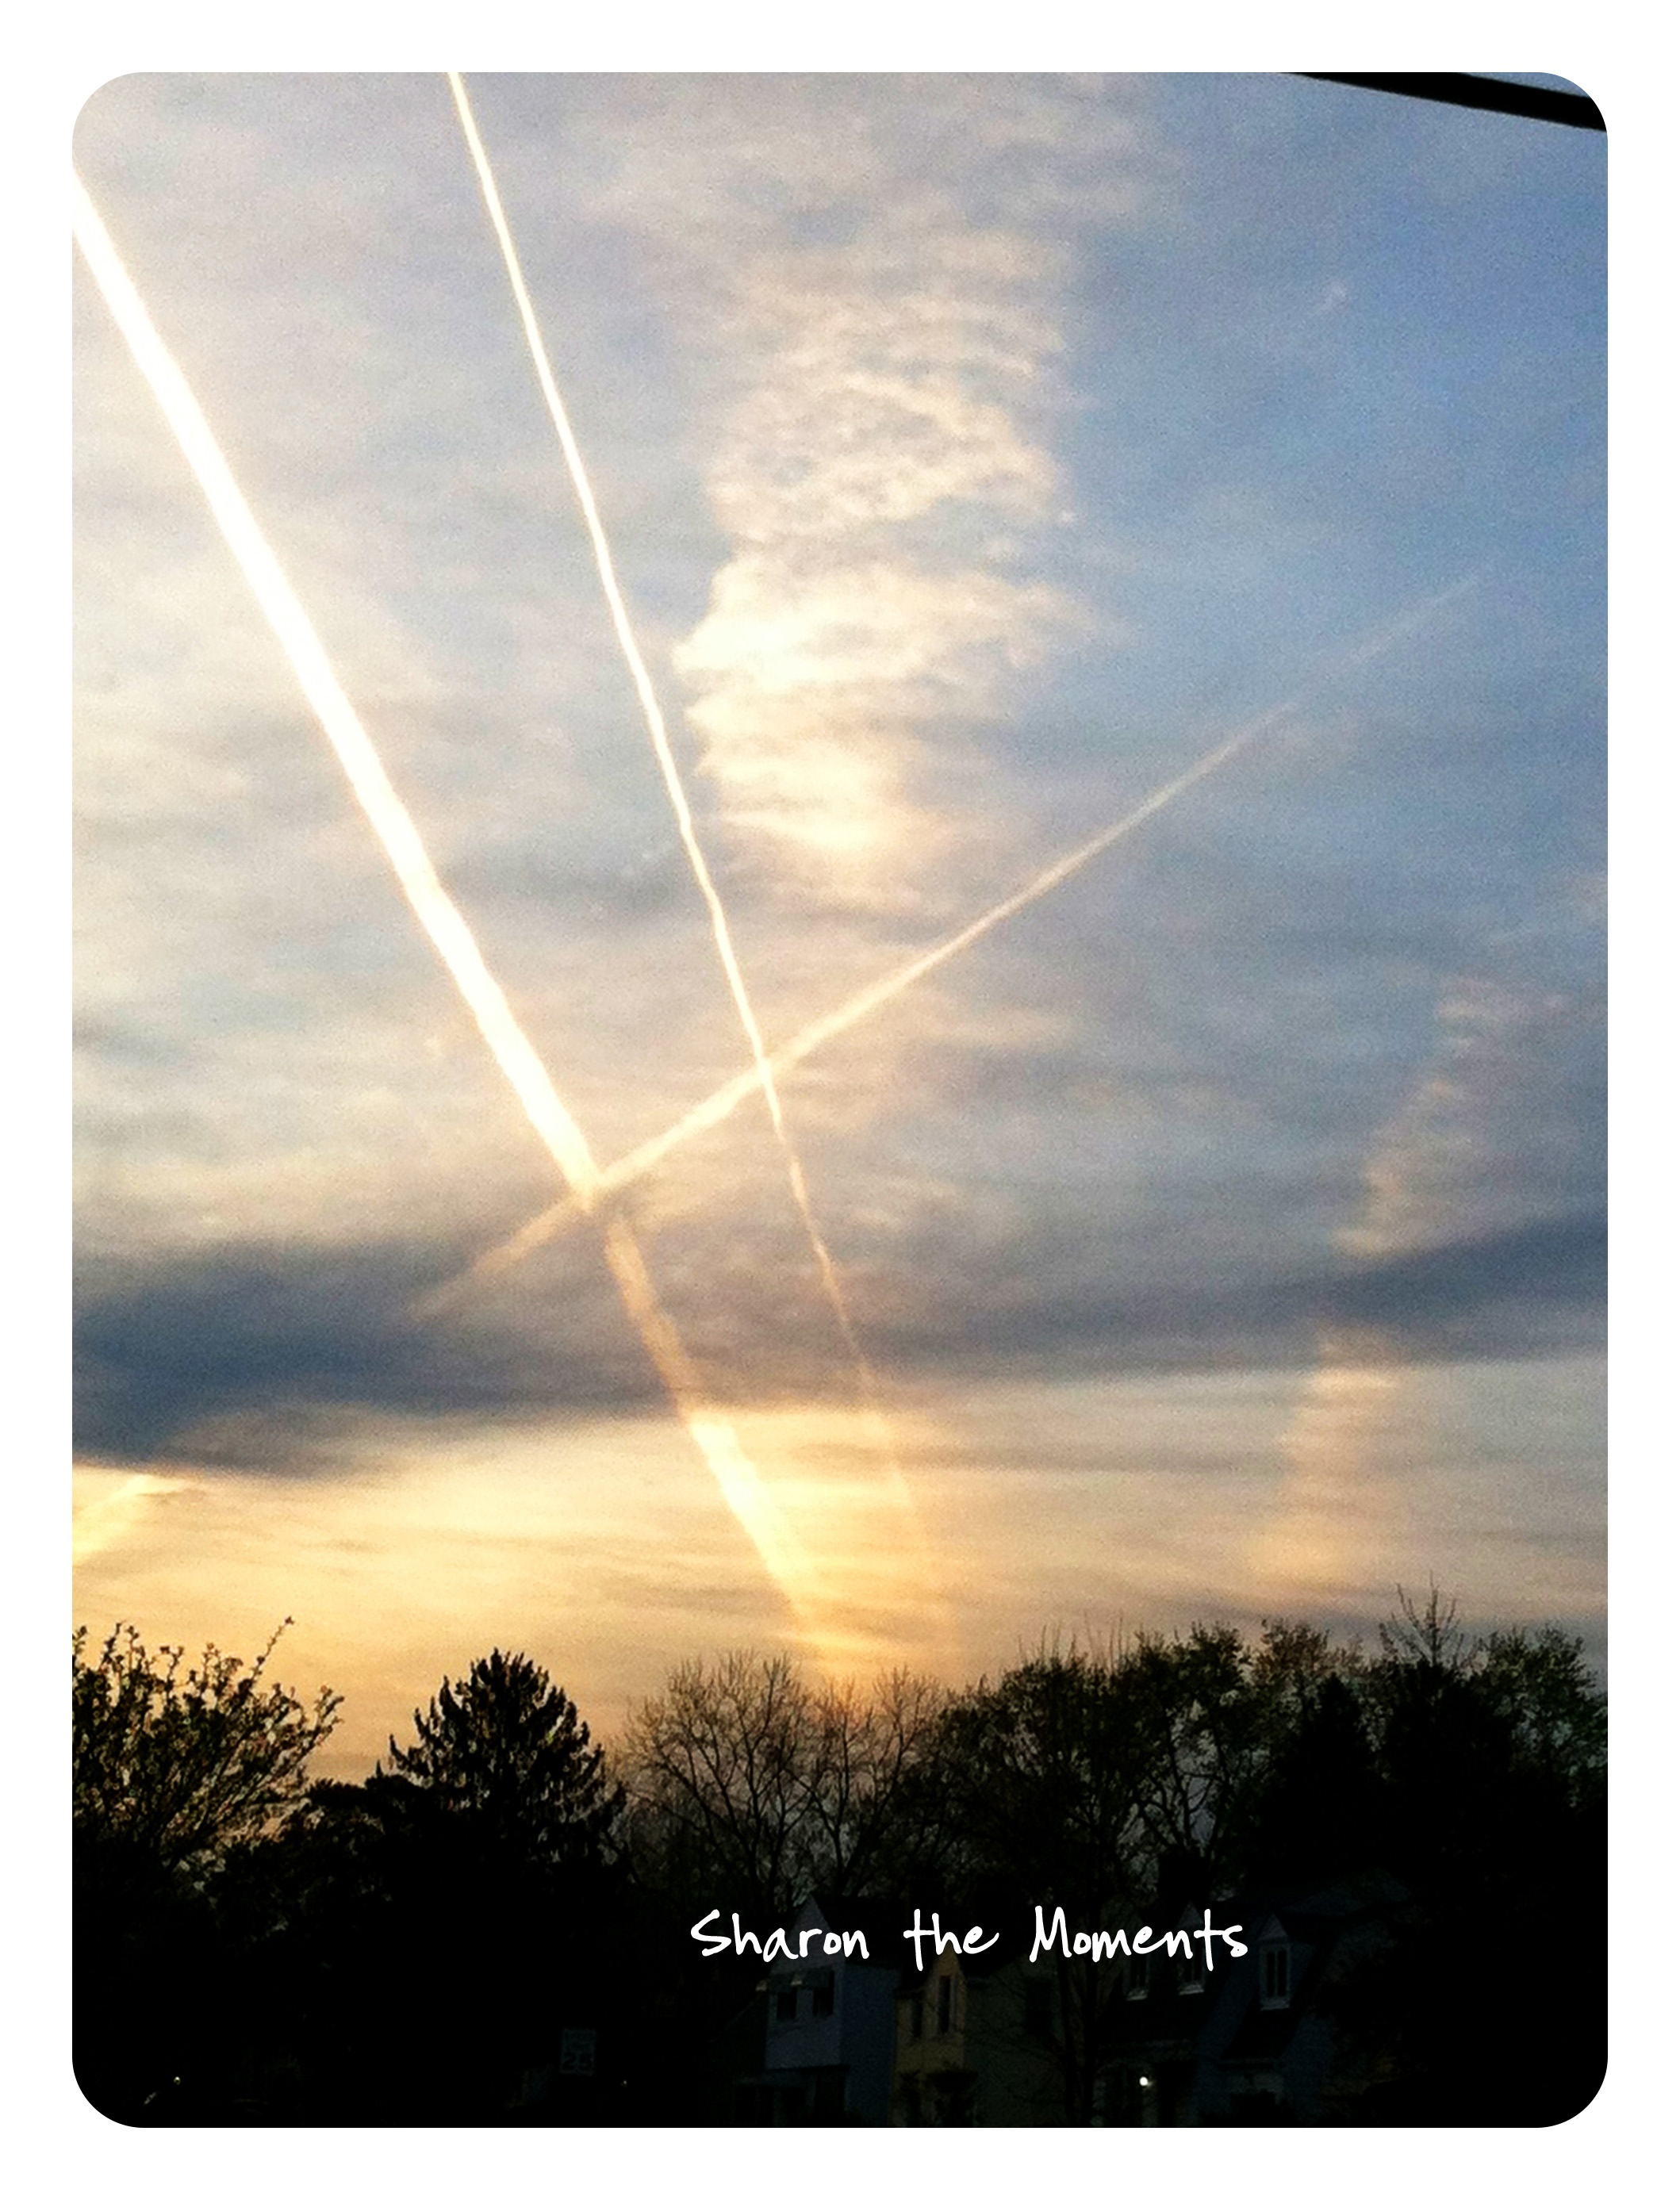 Cloud Art and Sunset in Columbus Ohio|Sharon the Moments blog